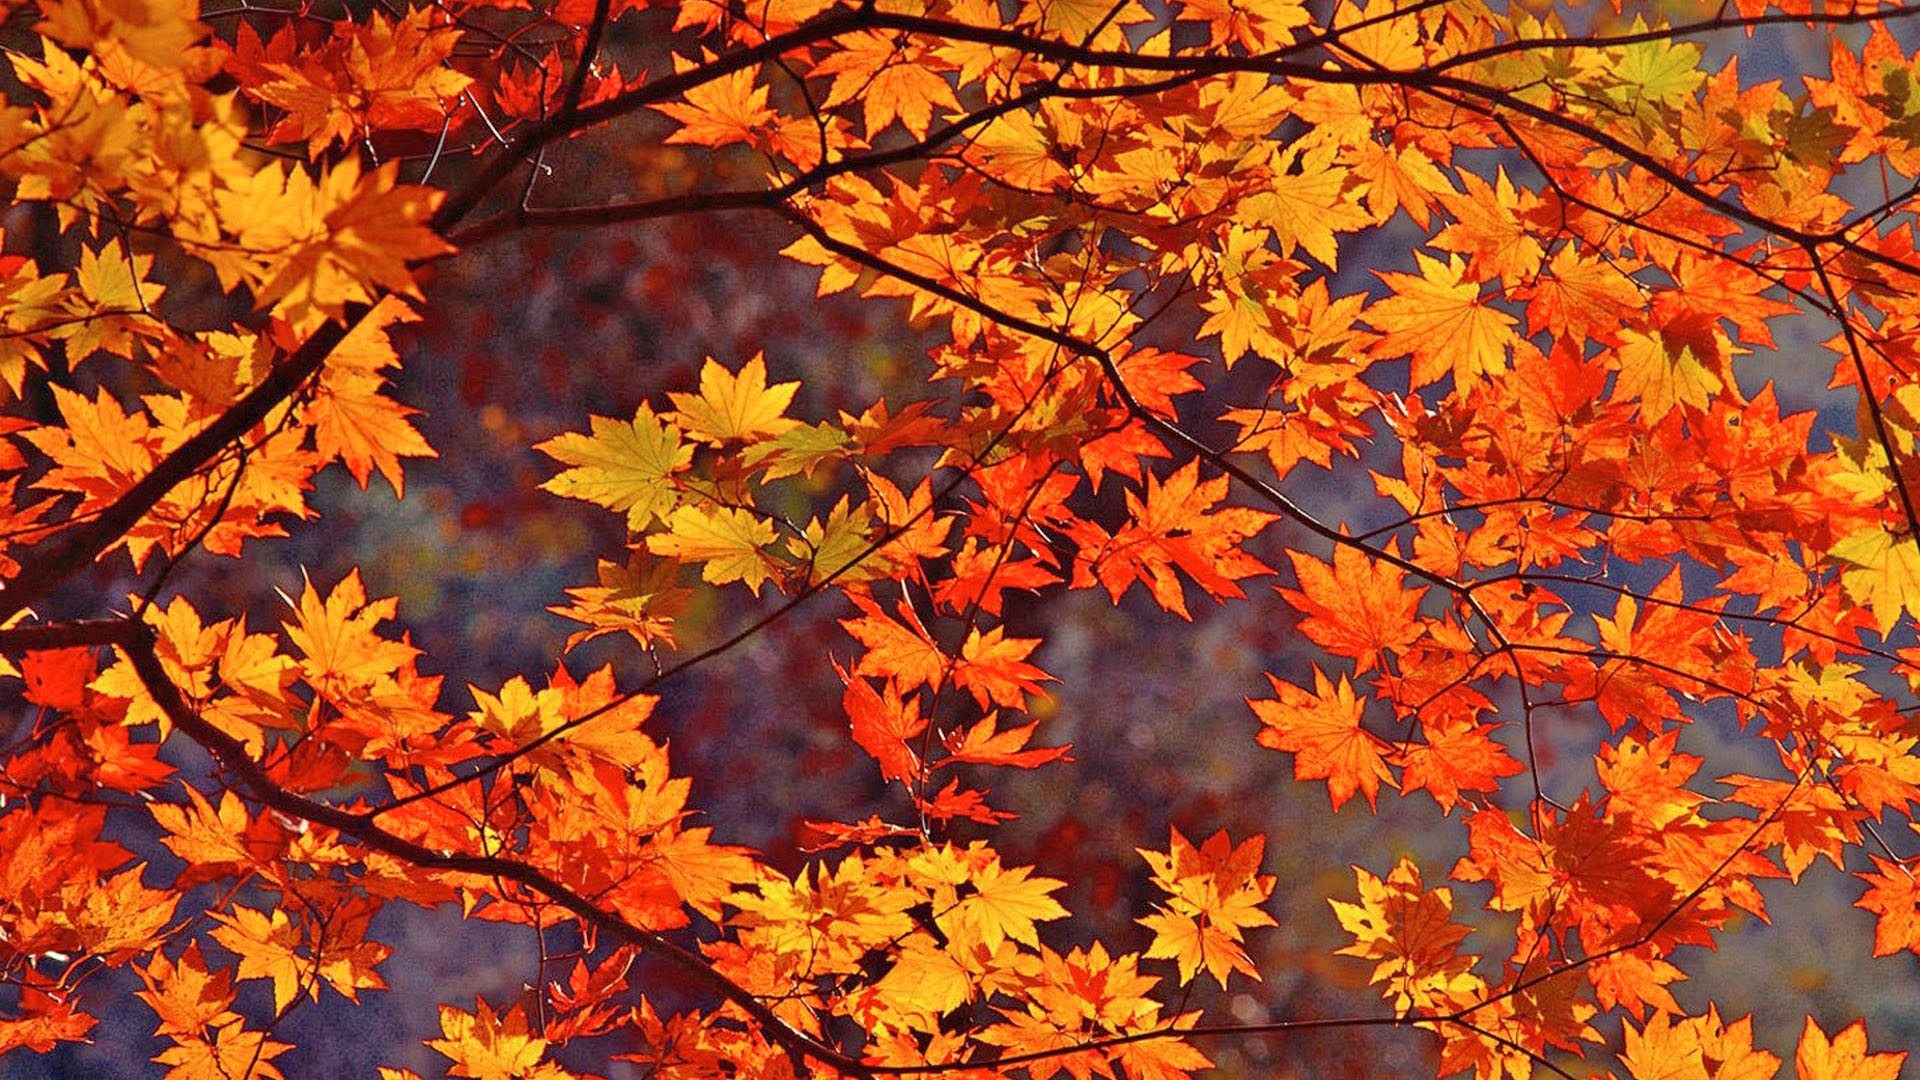 Download Fall Foliage Wallpapers 1920x1080